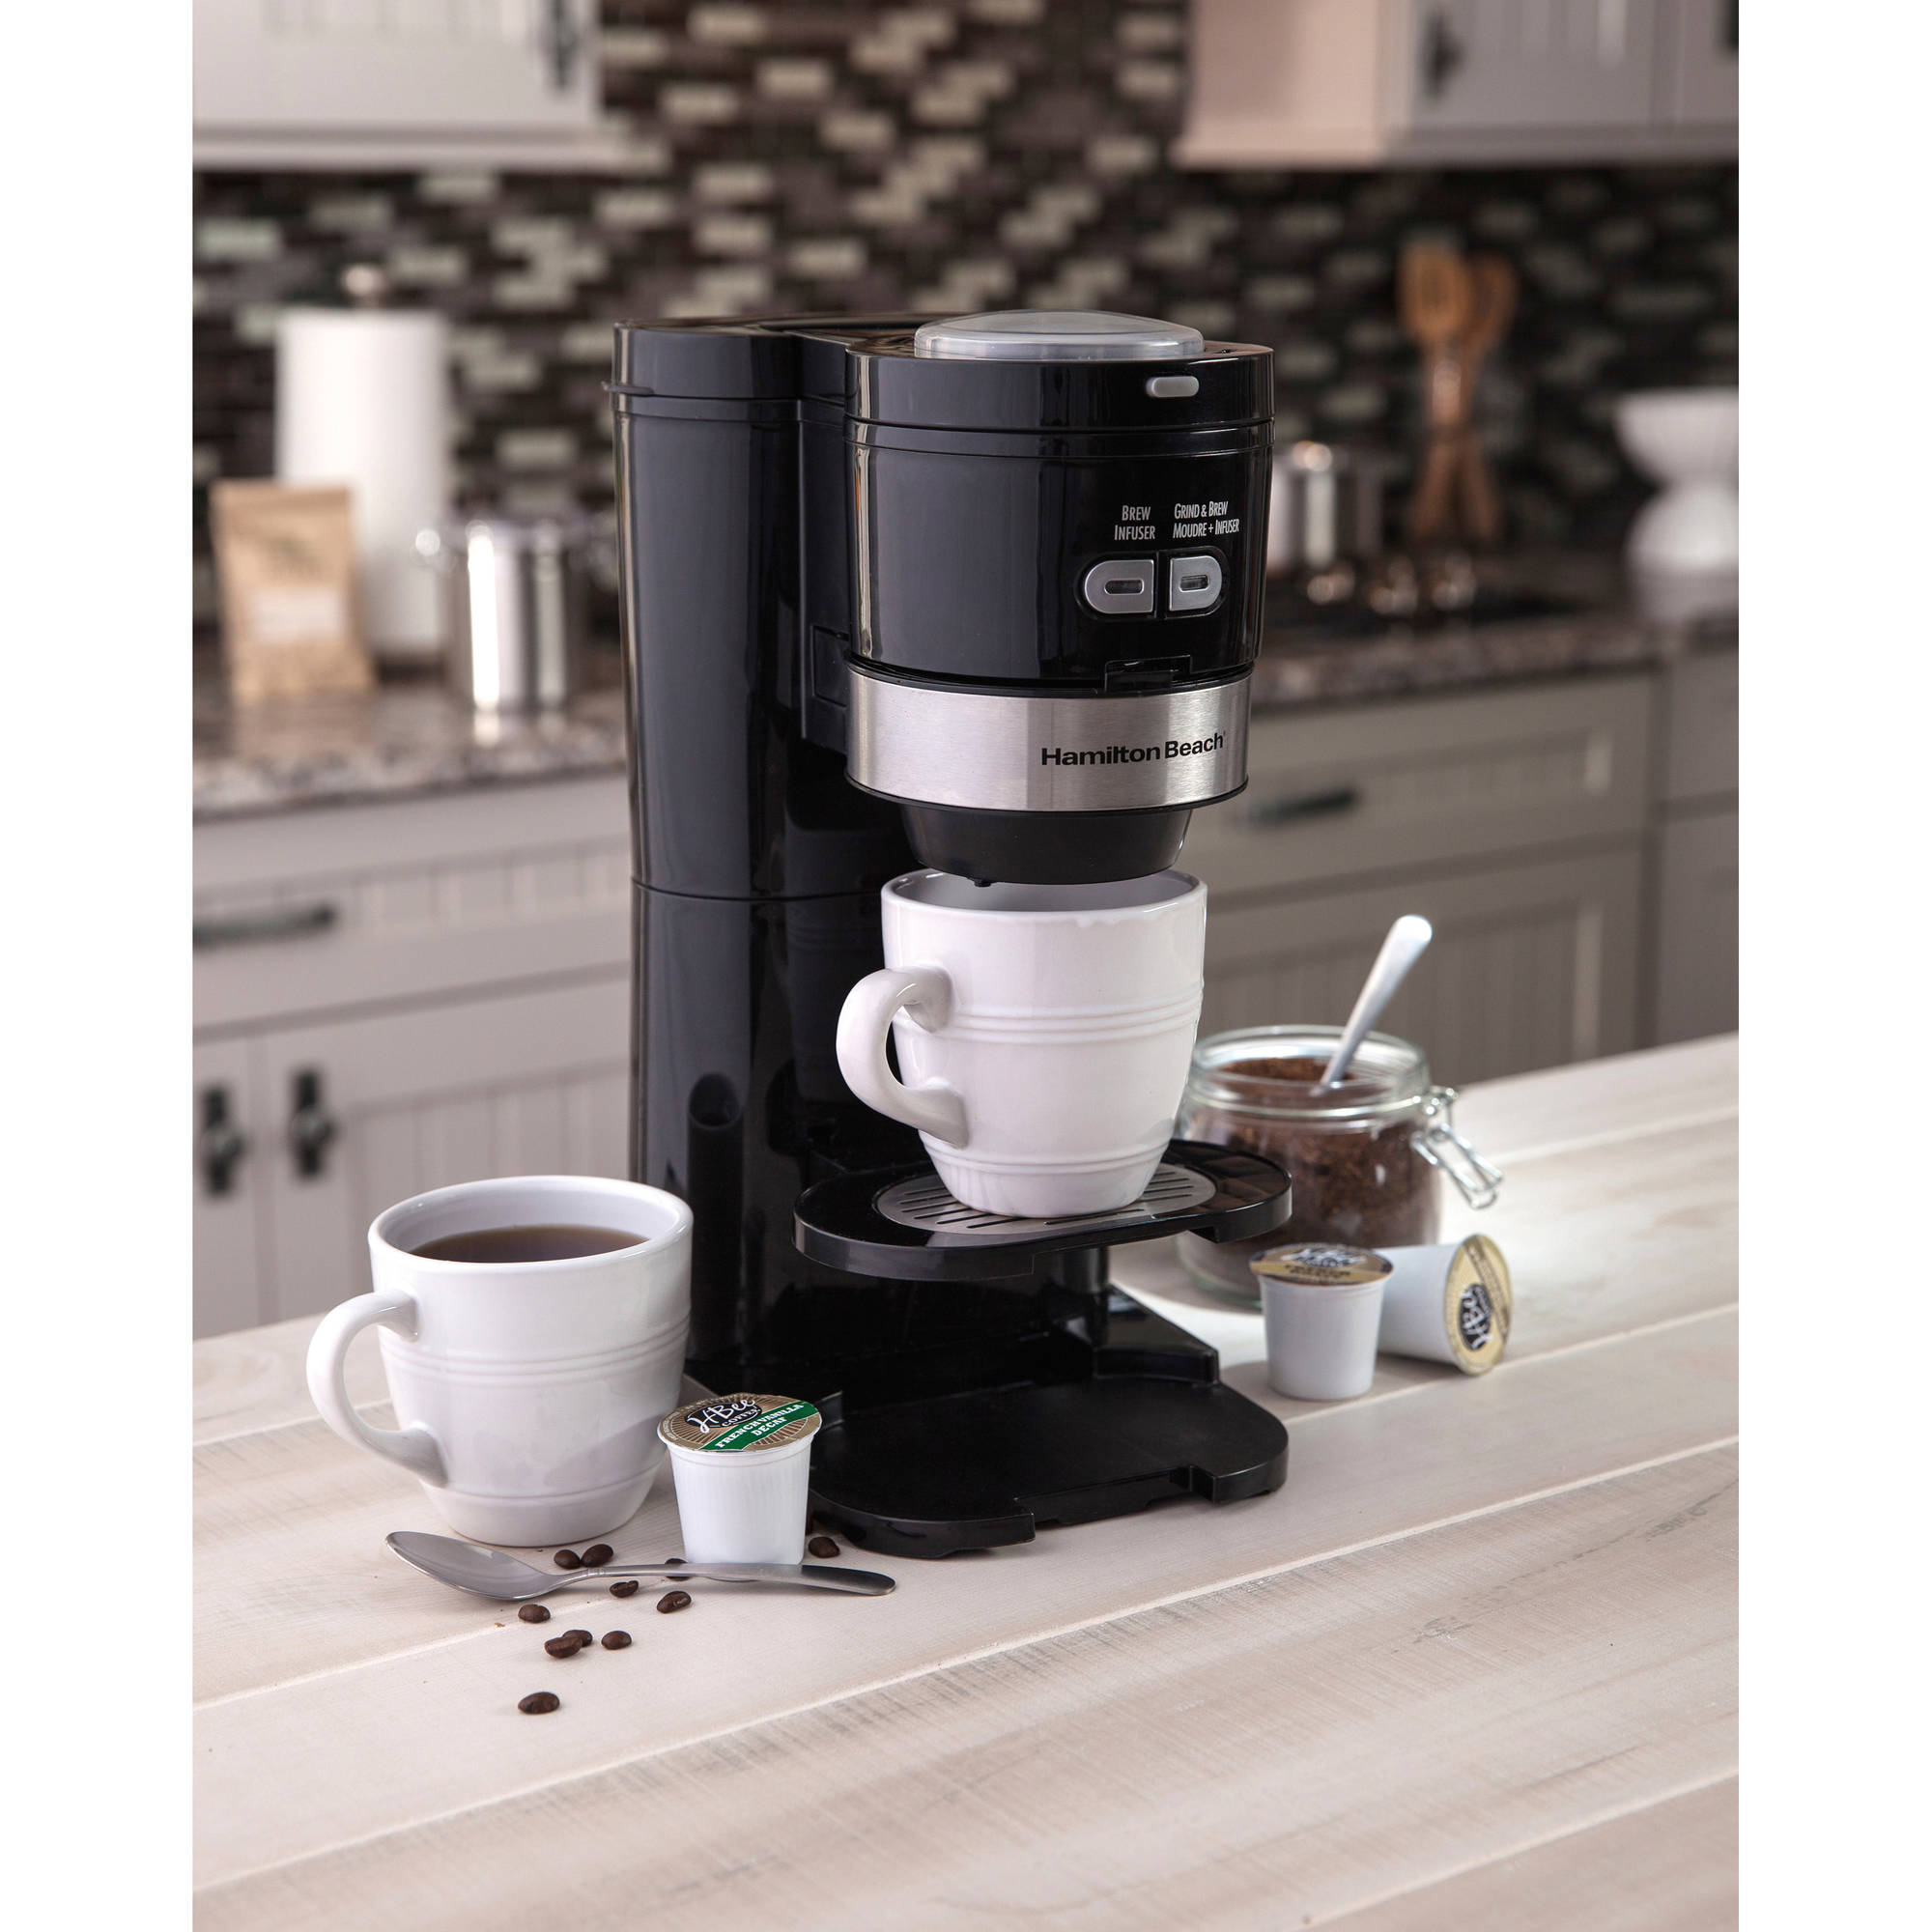 Capresso Coffee Maker With Built In Grinder. Krups Ea8250 Espresseria Super Automatic Espresso ...